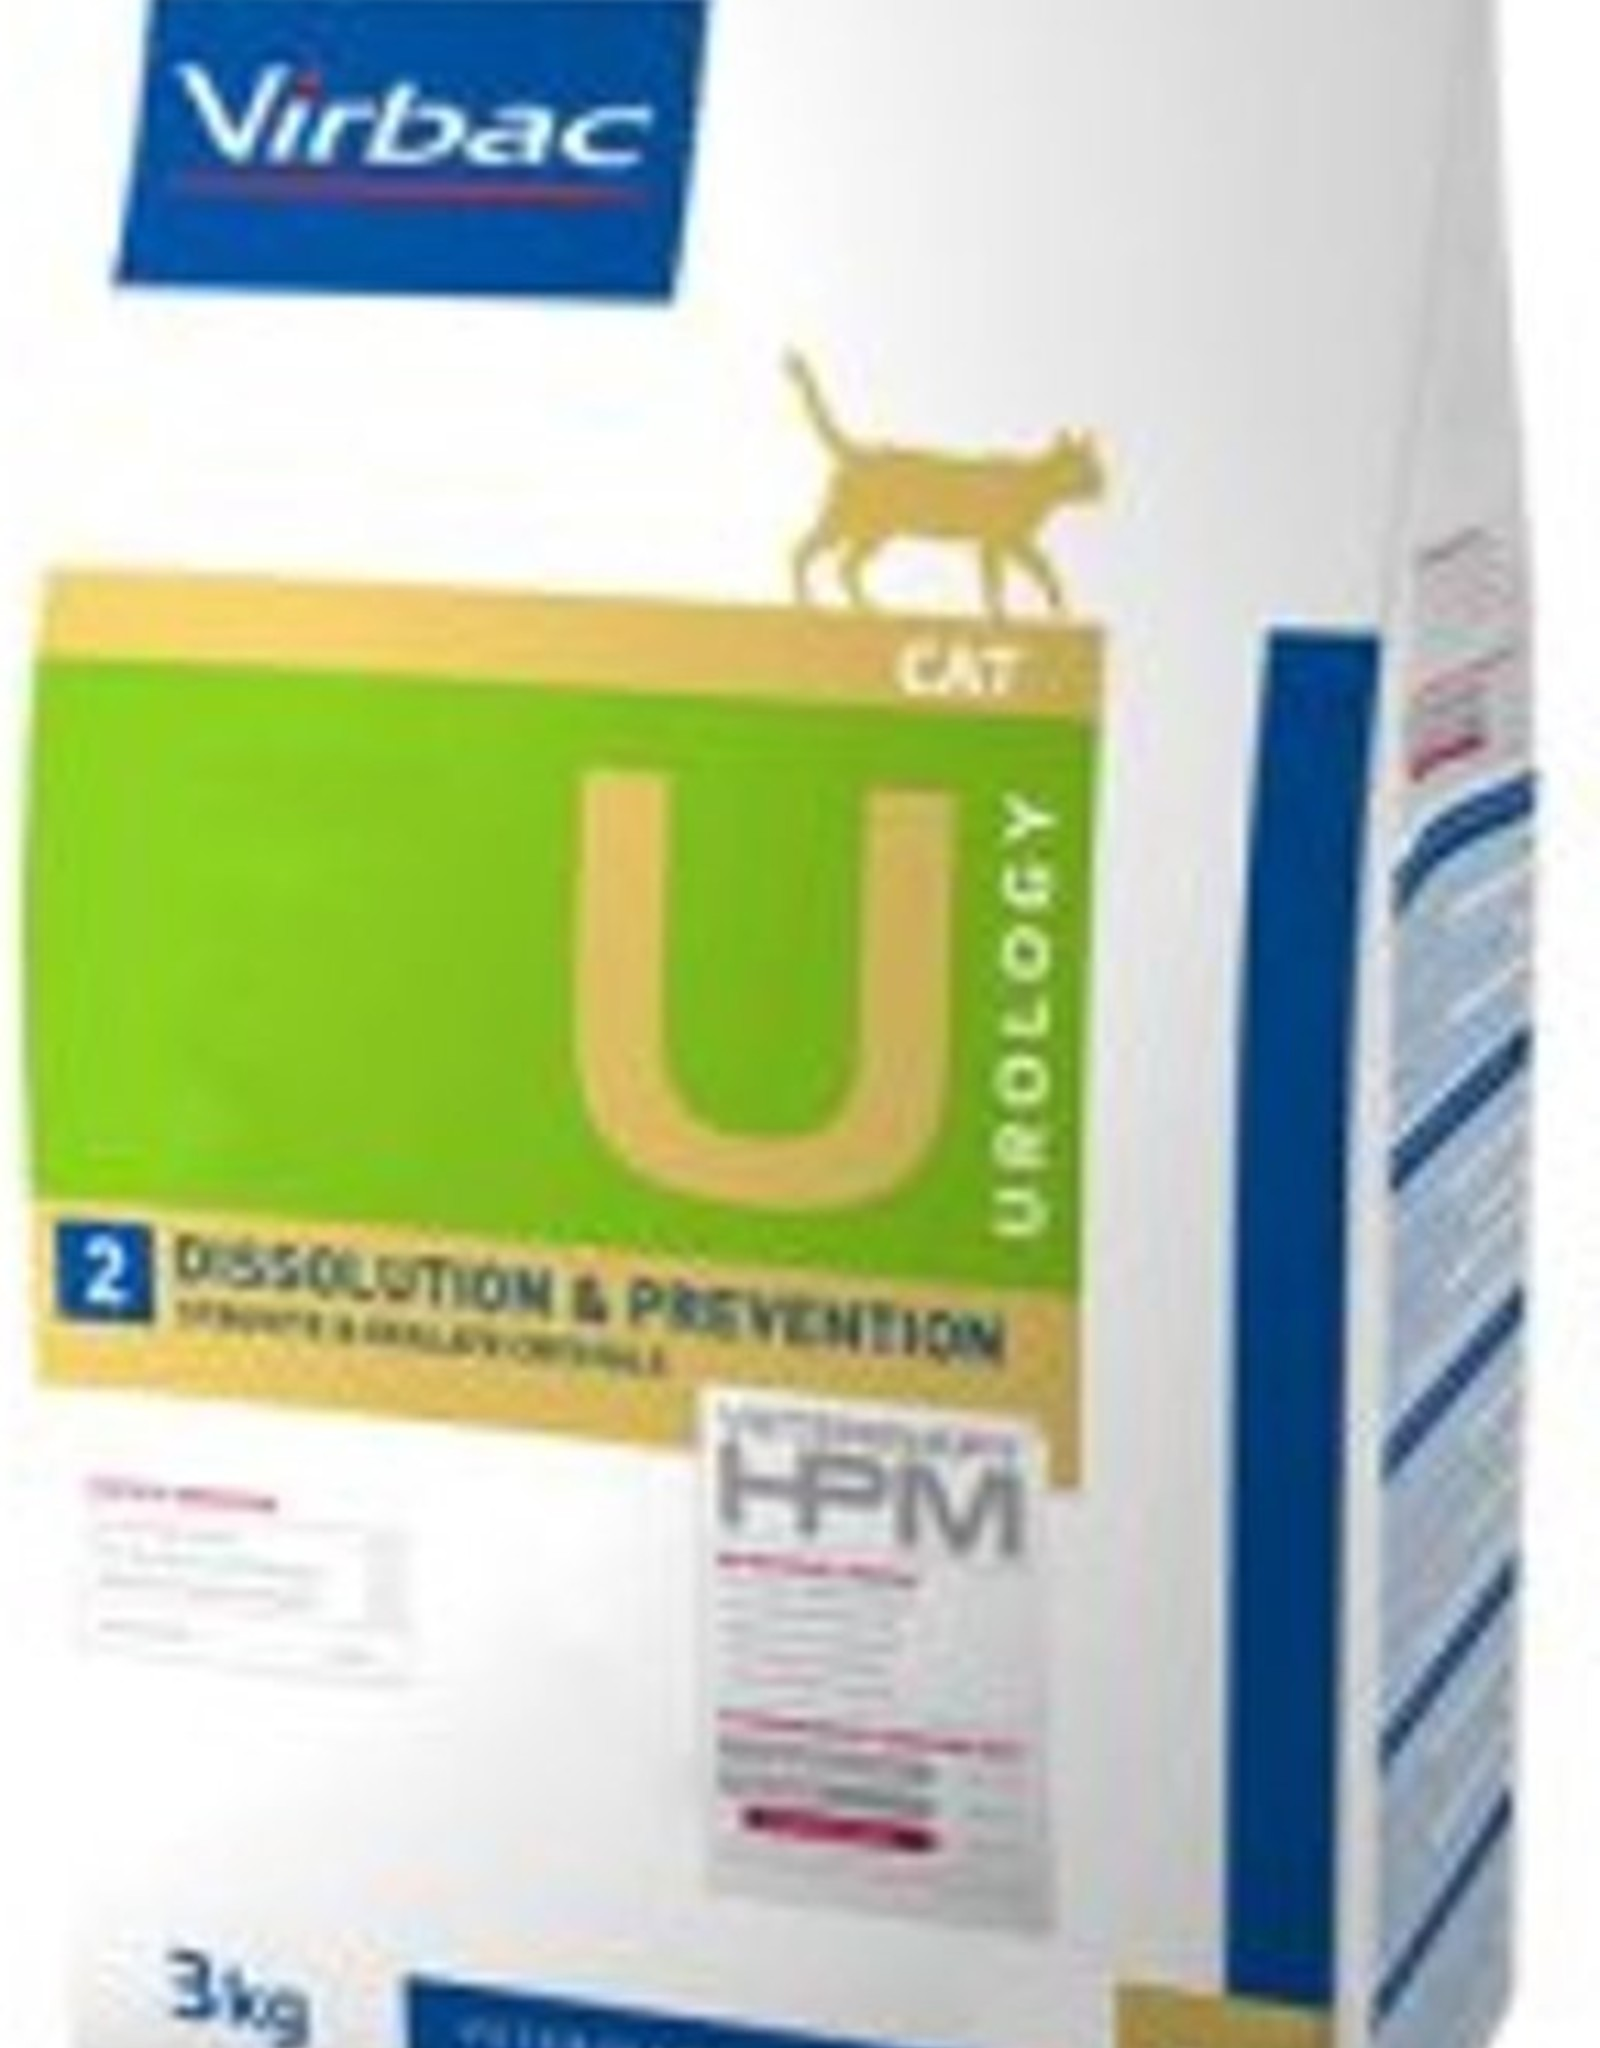 Virbac Virbac Hpm Cat Dissolution/prevention U2 3kg